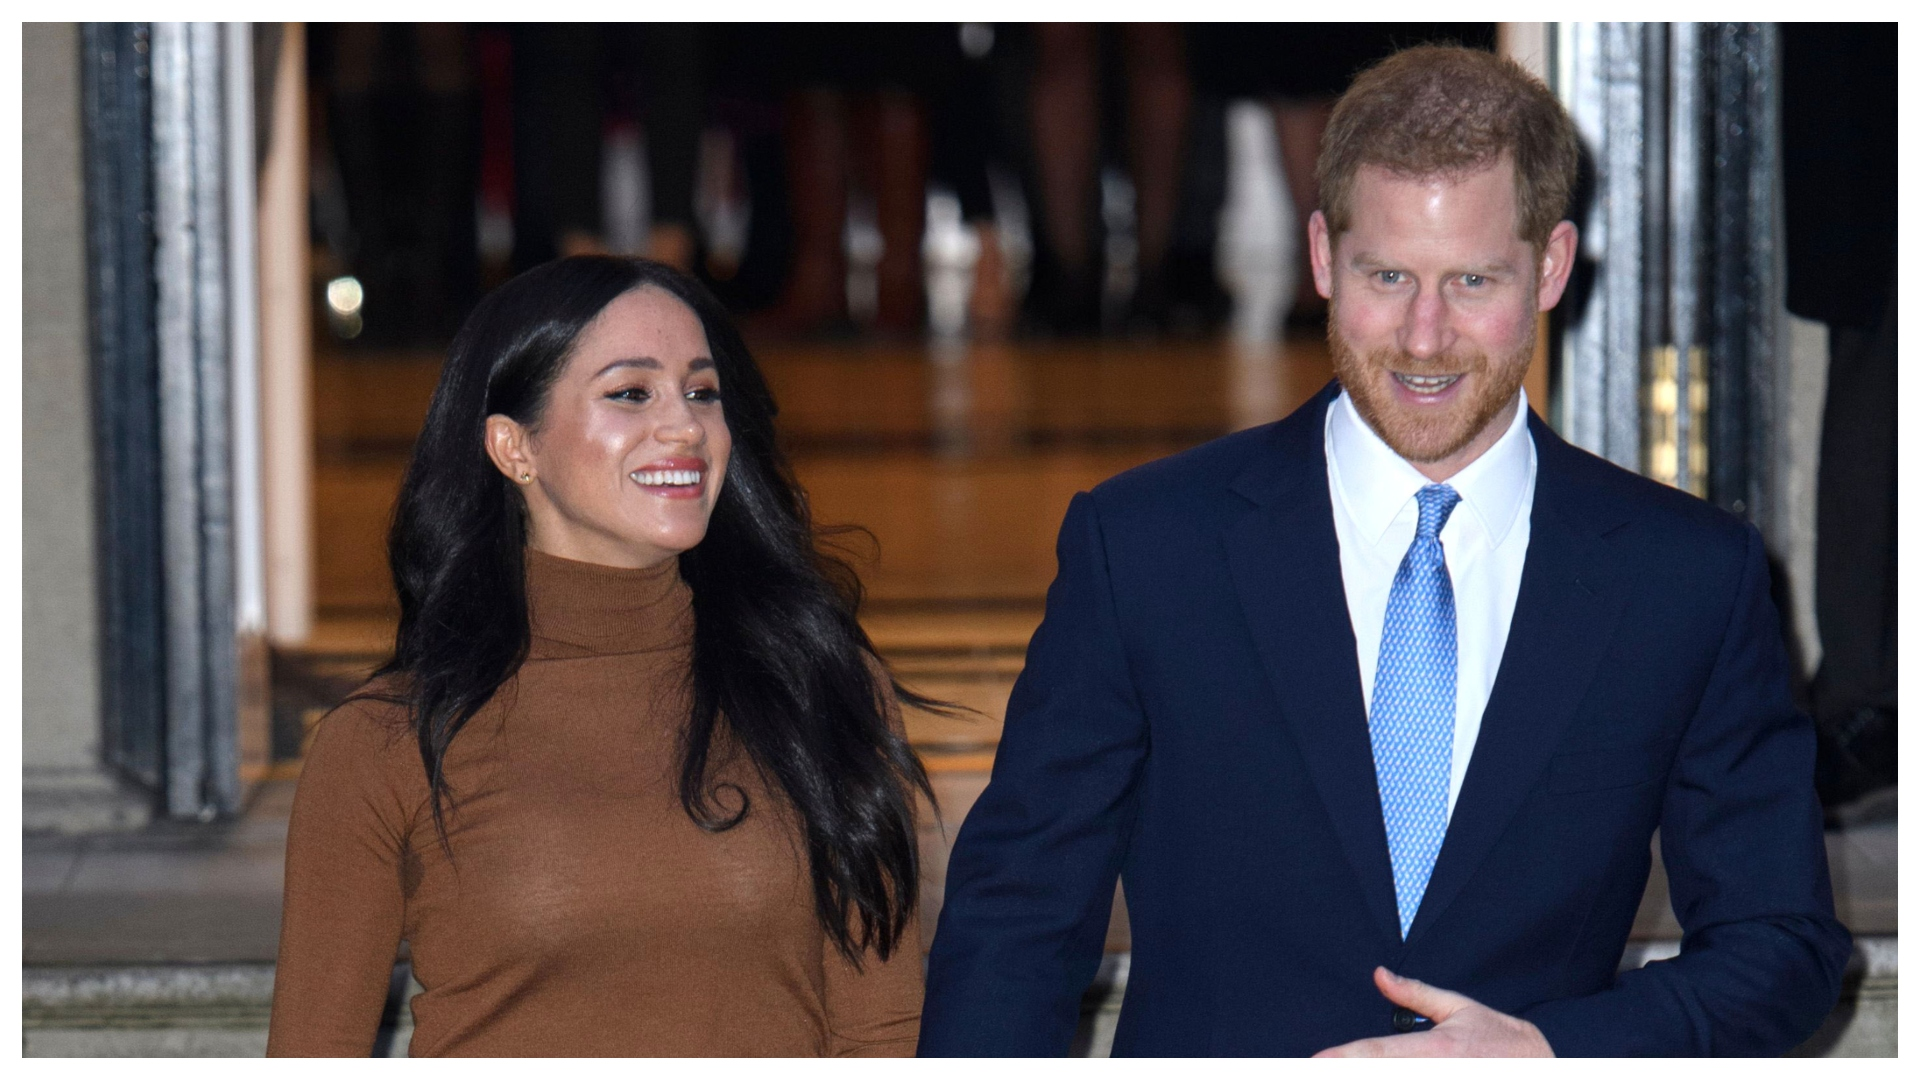 Meghan Markle & Prince Harry Make First Appearance Since Royal Exit